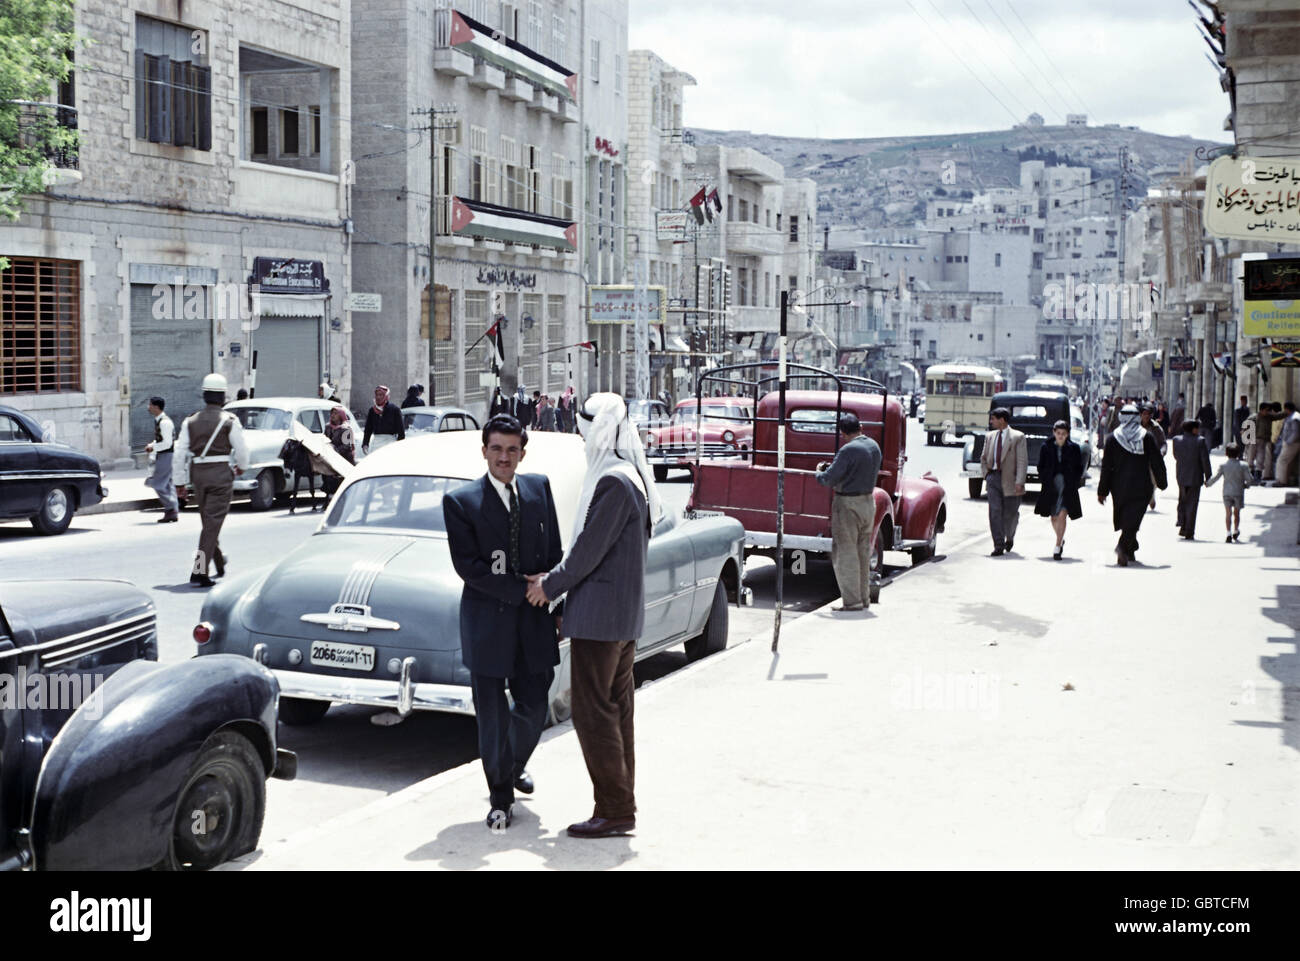 geography / travel, Jordan, Amman, street scene, pedestrians and parked cars, 1955, Additional-Rights-Clearences - Stock Image